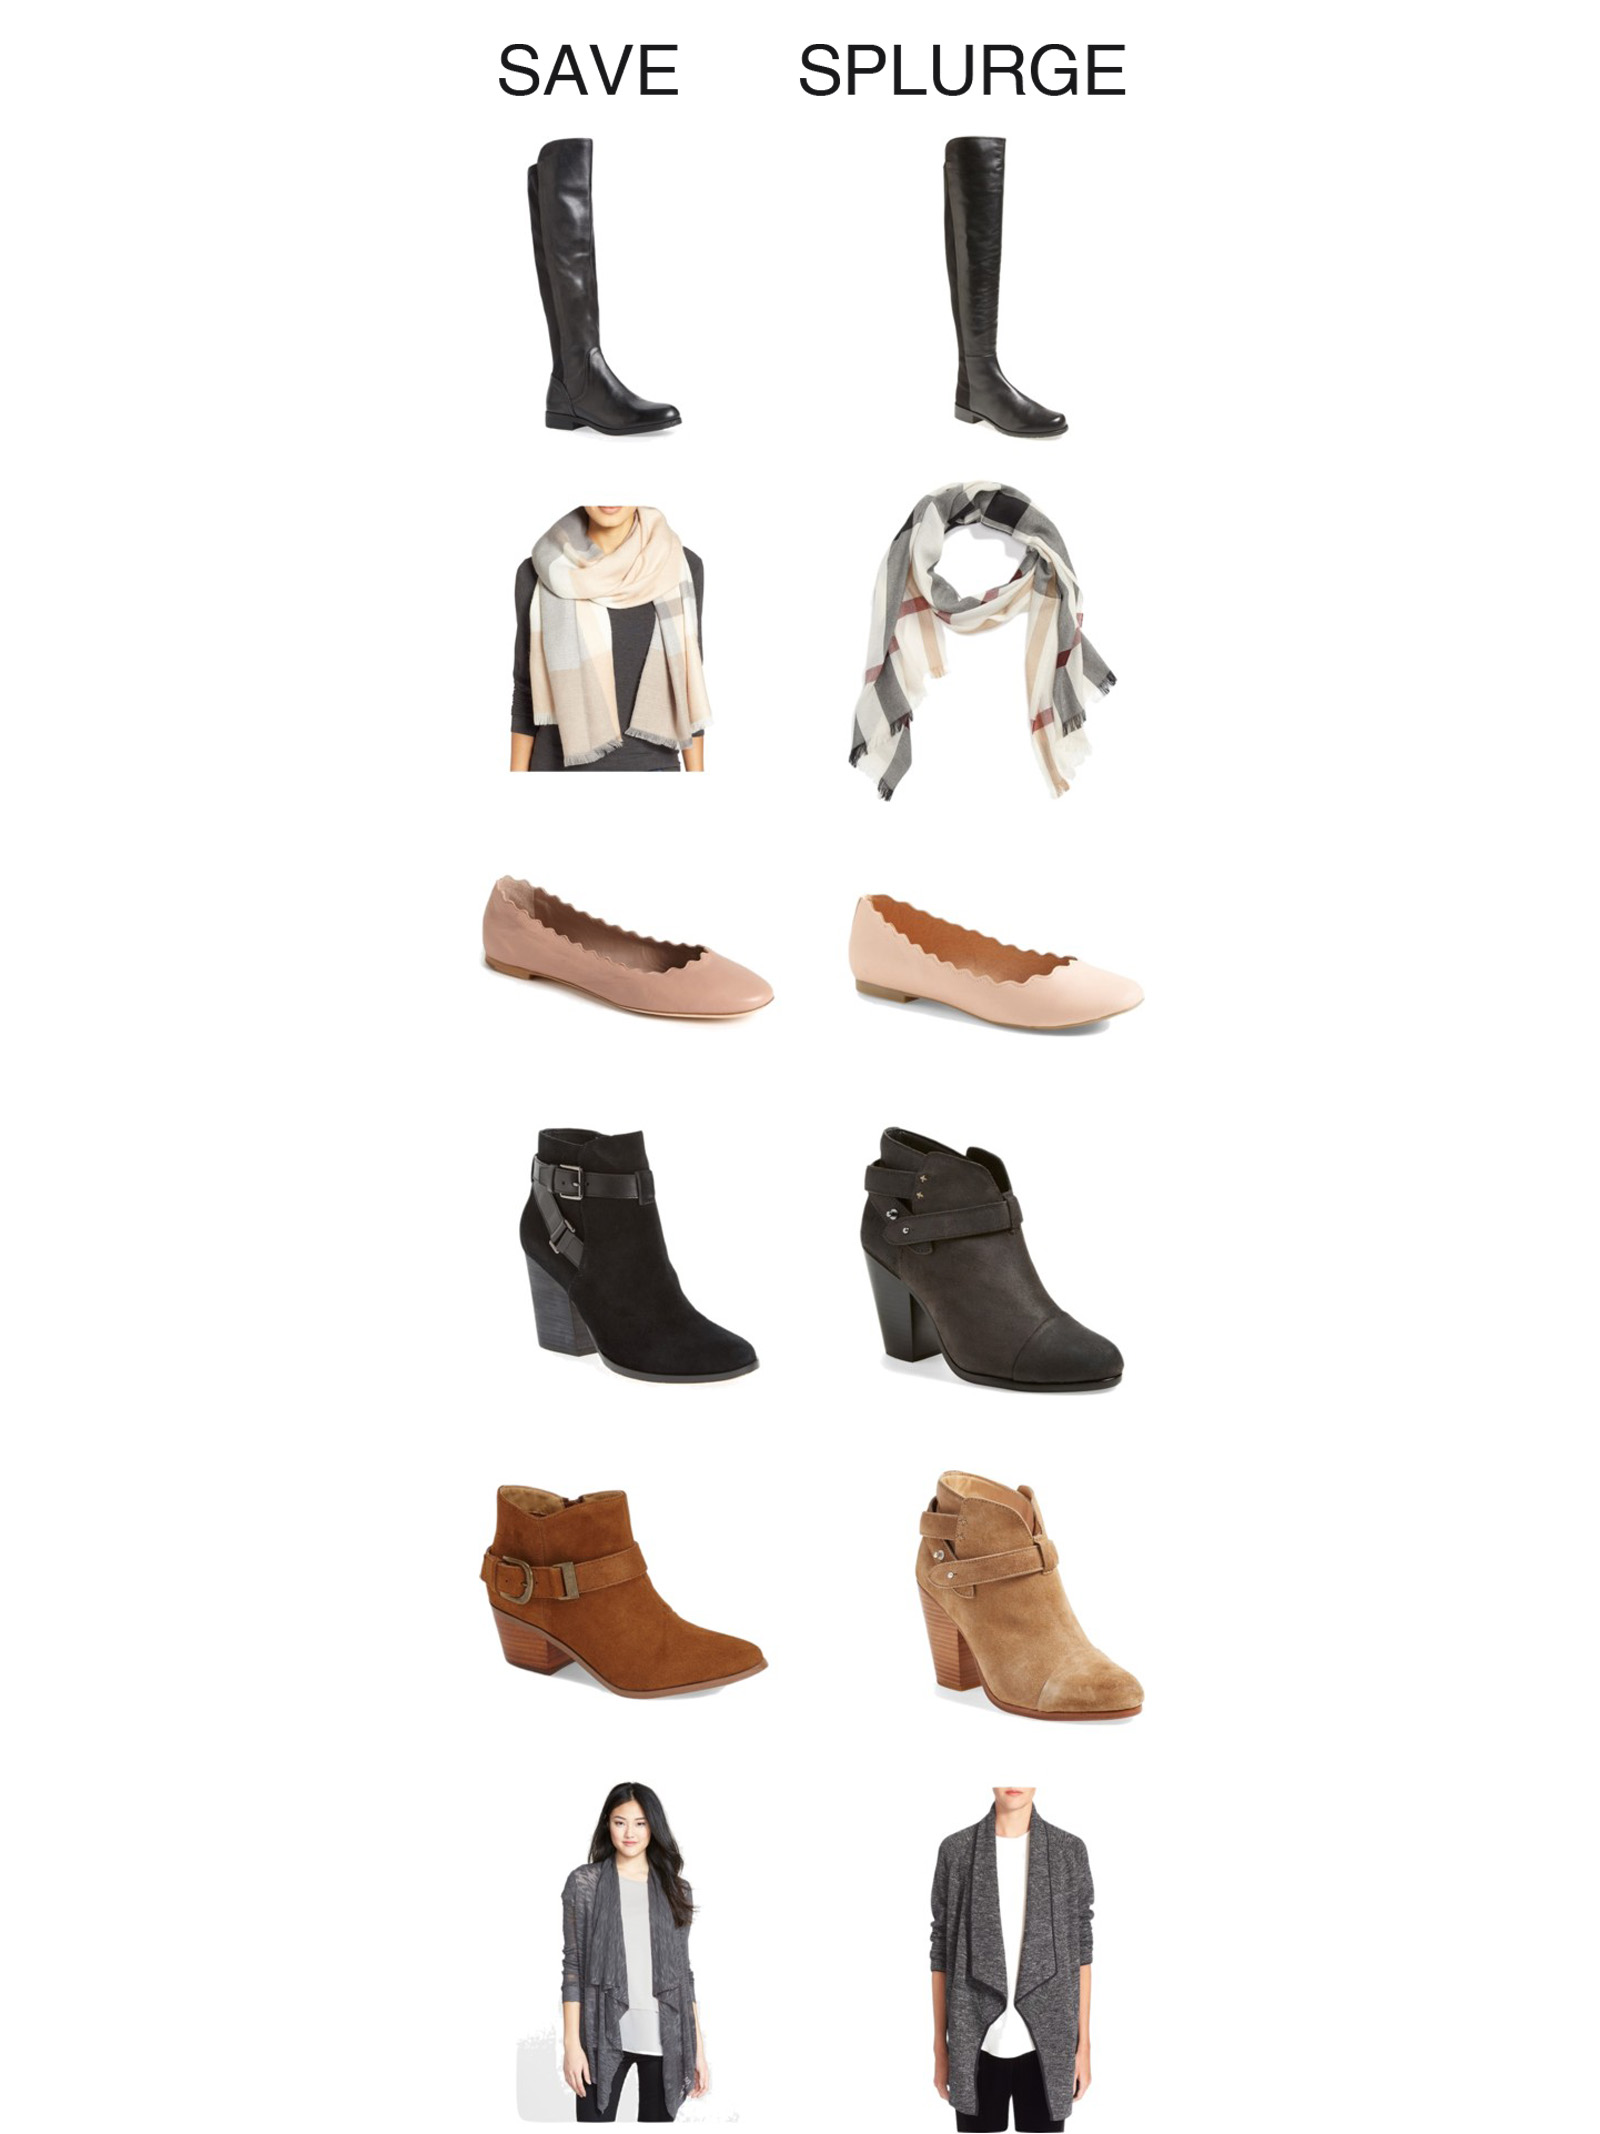 2015-11-13_collage_nordstrom-sale-picks-save-splurge-rag-and-bone-chloe-flats-stuart-weitzman-5050